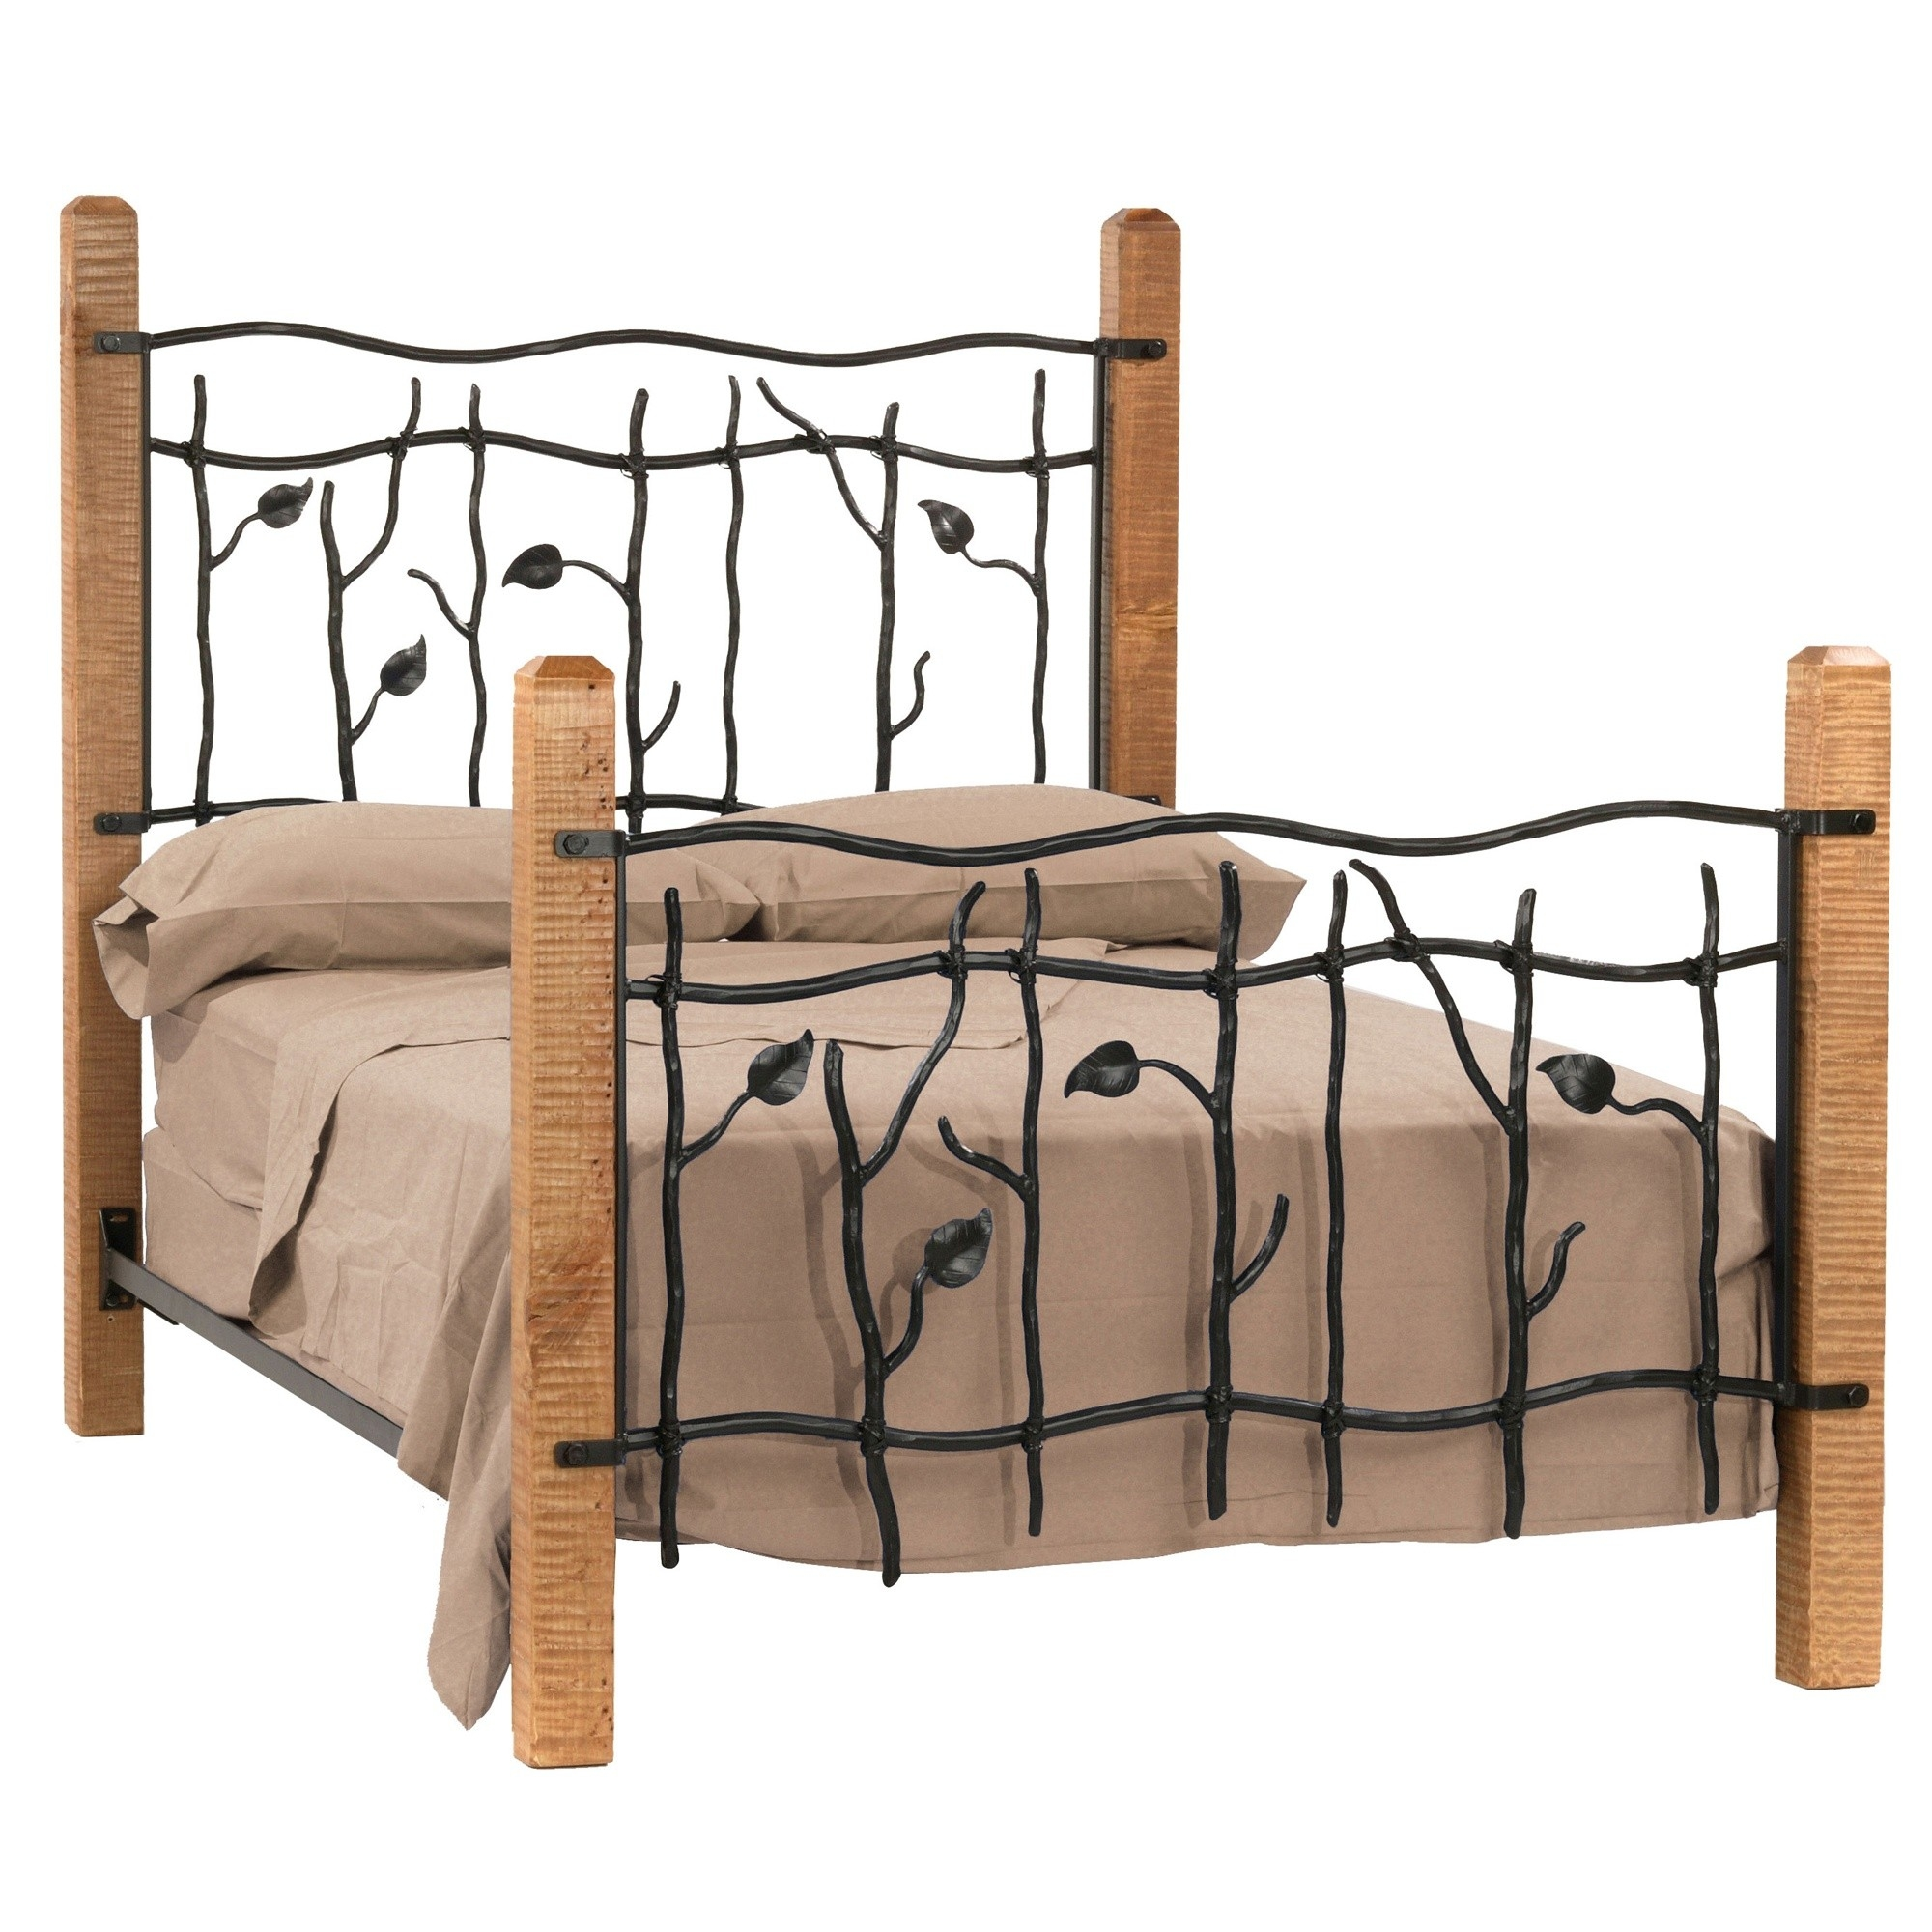 Permalink to Wrought Iron Sleigh Bed Frames